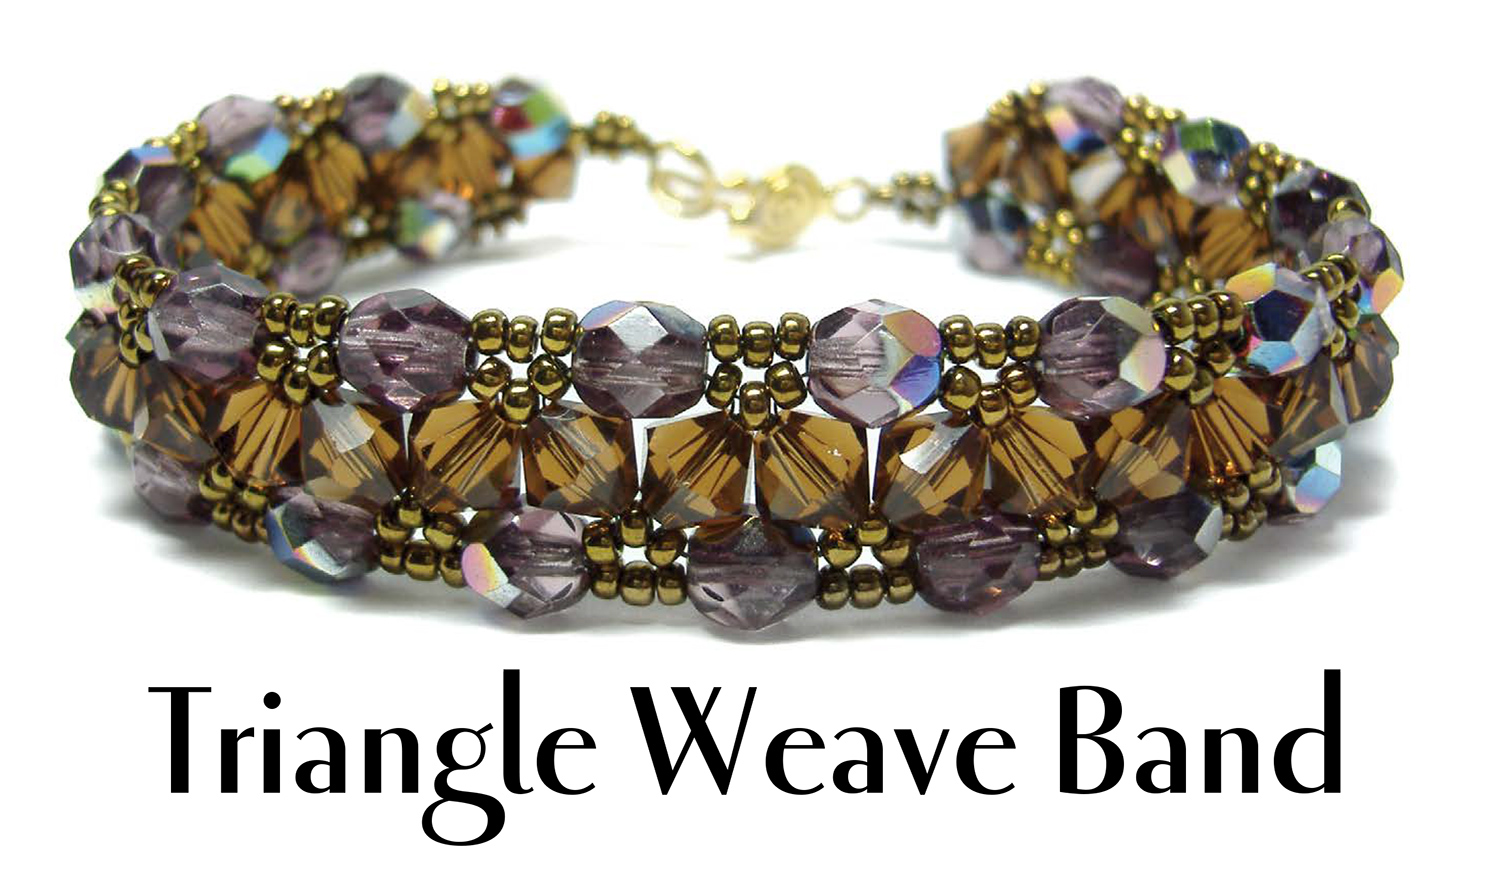 Triangle Weave Band